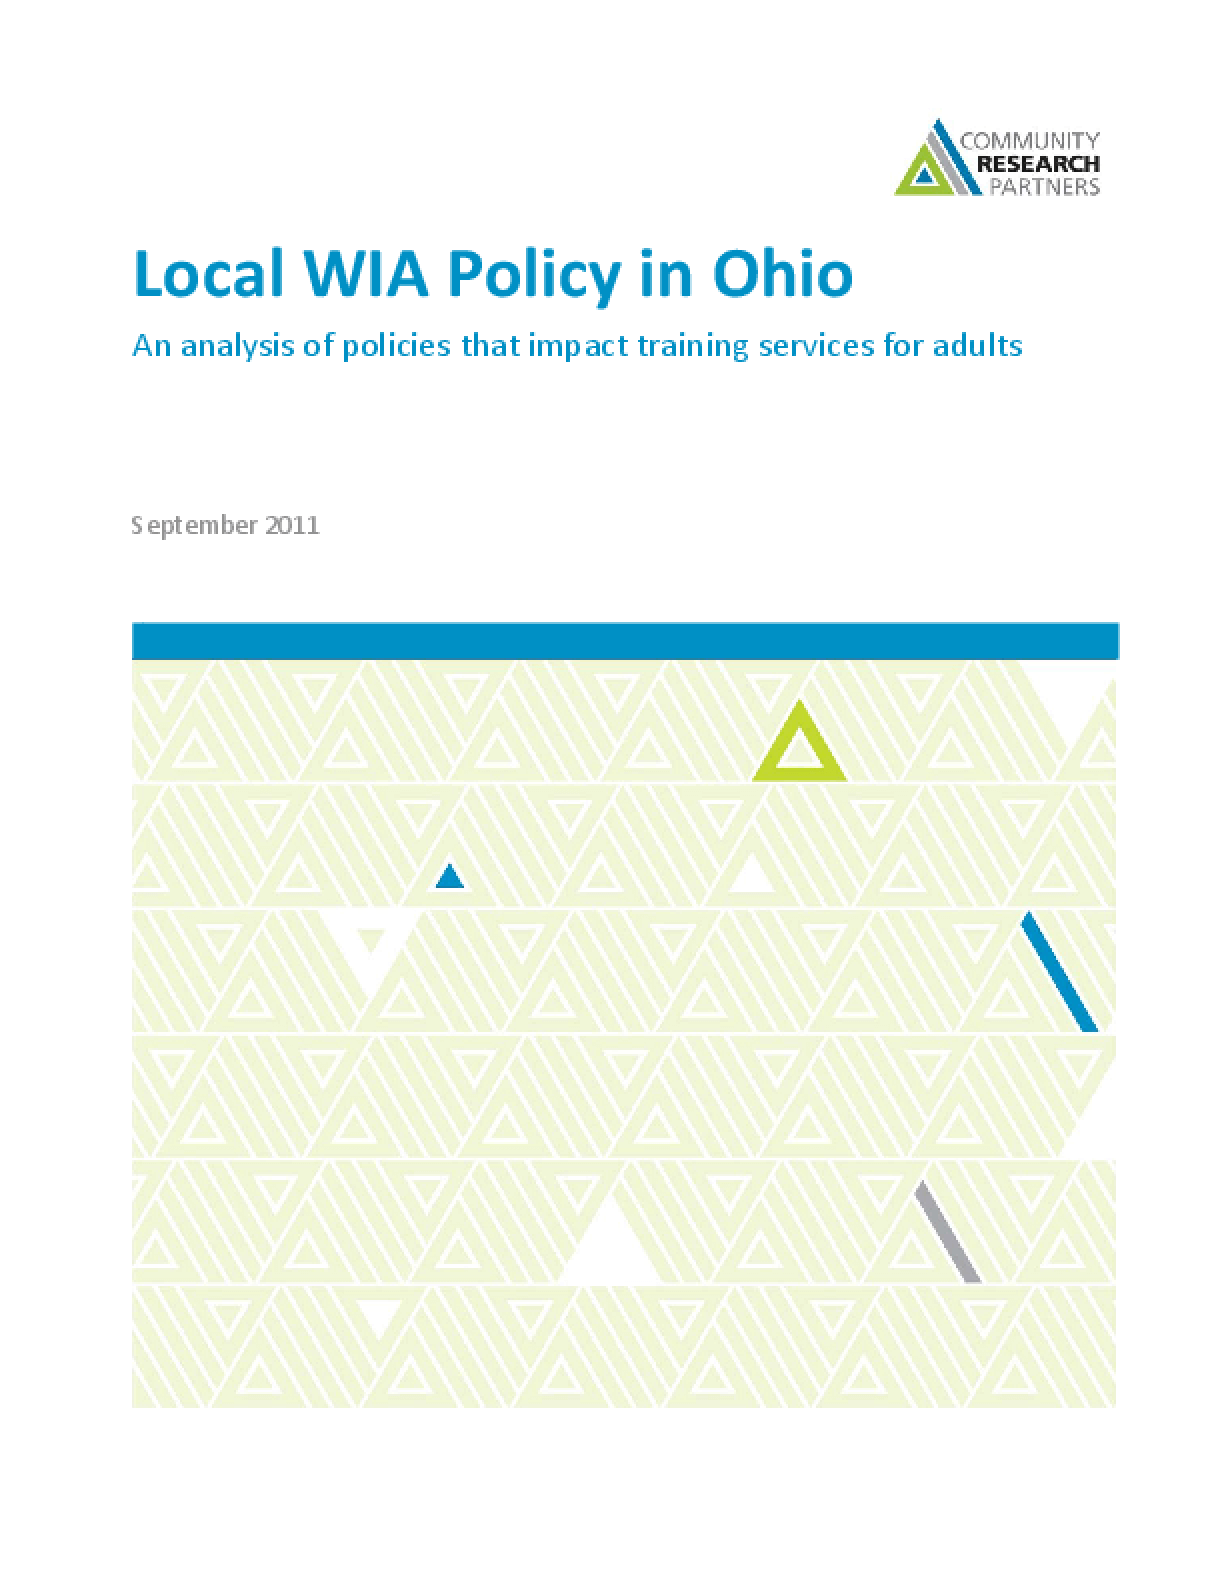 Local WIA Policy in Ohio: An analysis of policies that impact training services for adults